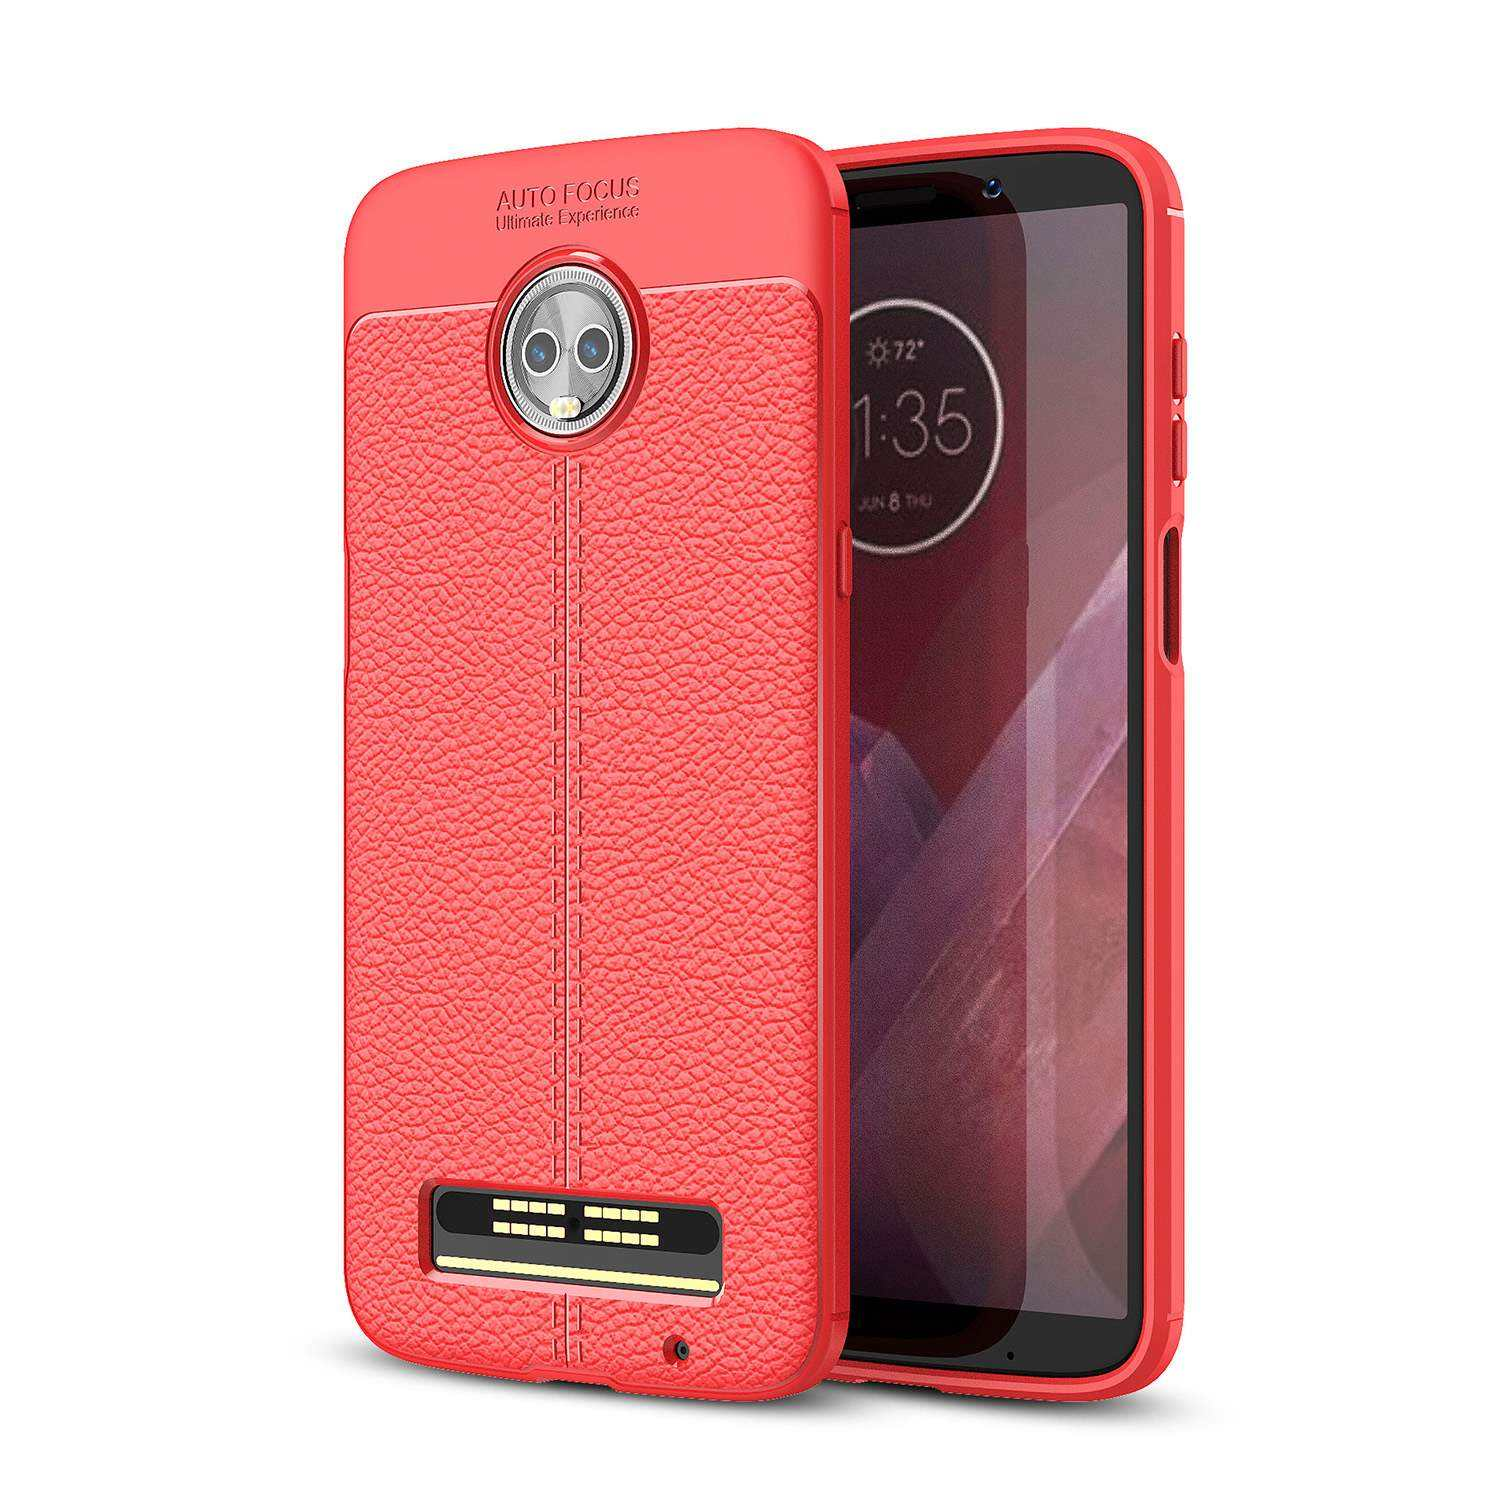 Factory Price 2020 Ultra Thin Litchi Leather Pattern Soft TPU Smartphone Case For Moto Z3 Play Phone Cover